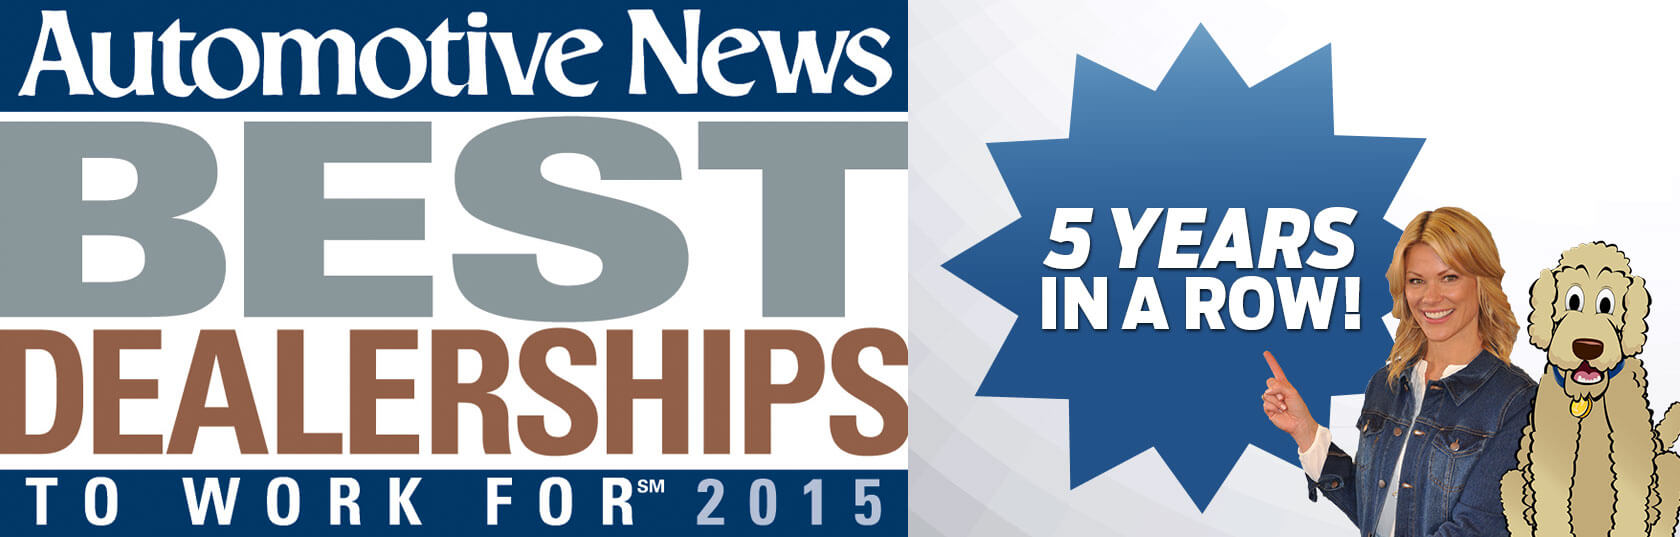 Automotive news Best Dealerships to Work for 2015